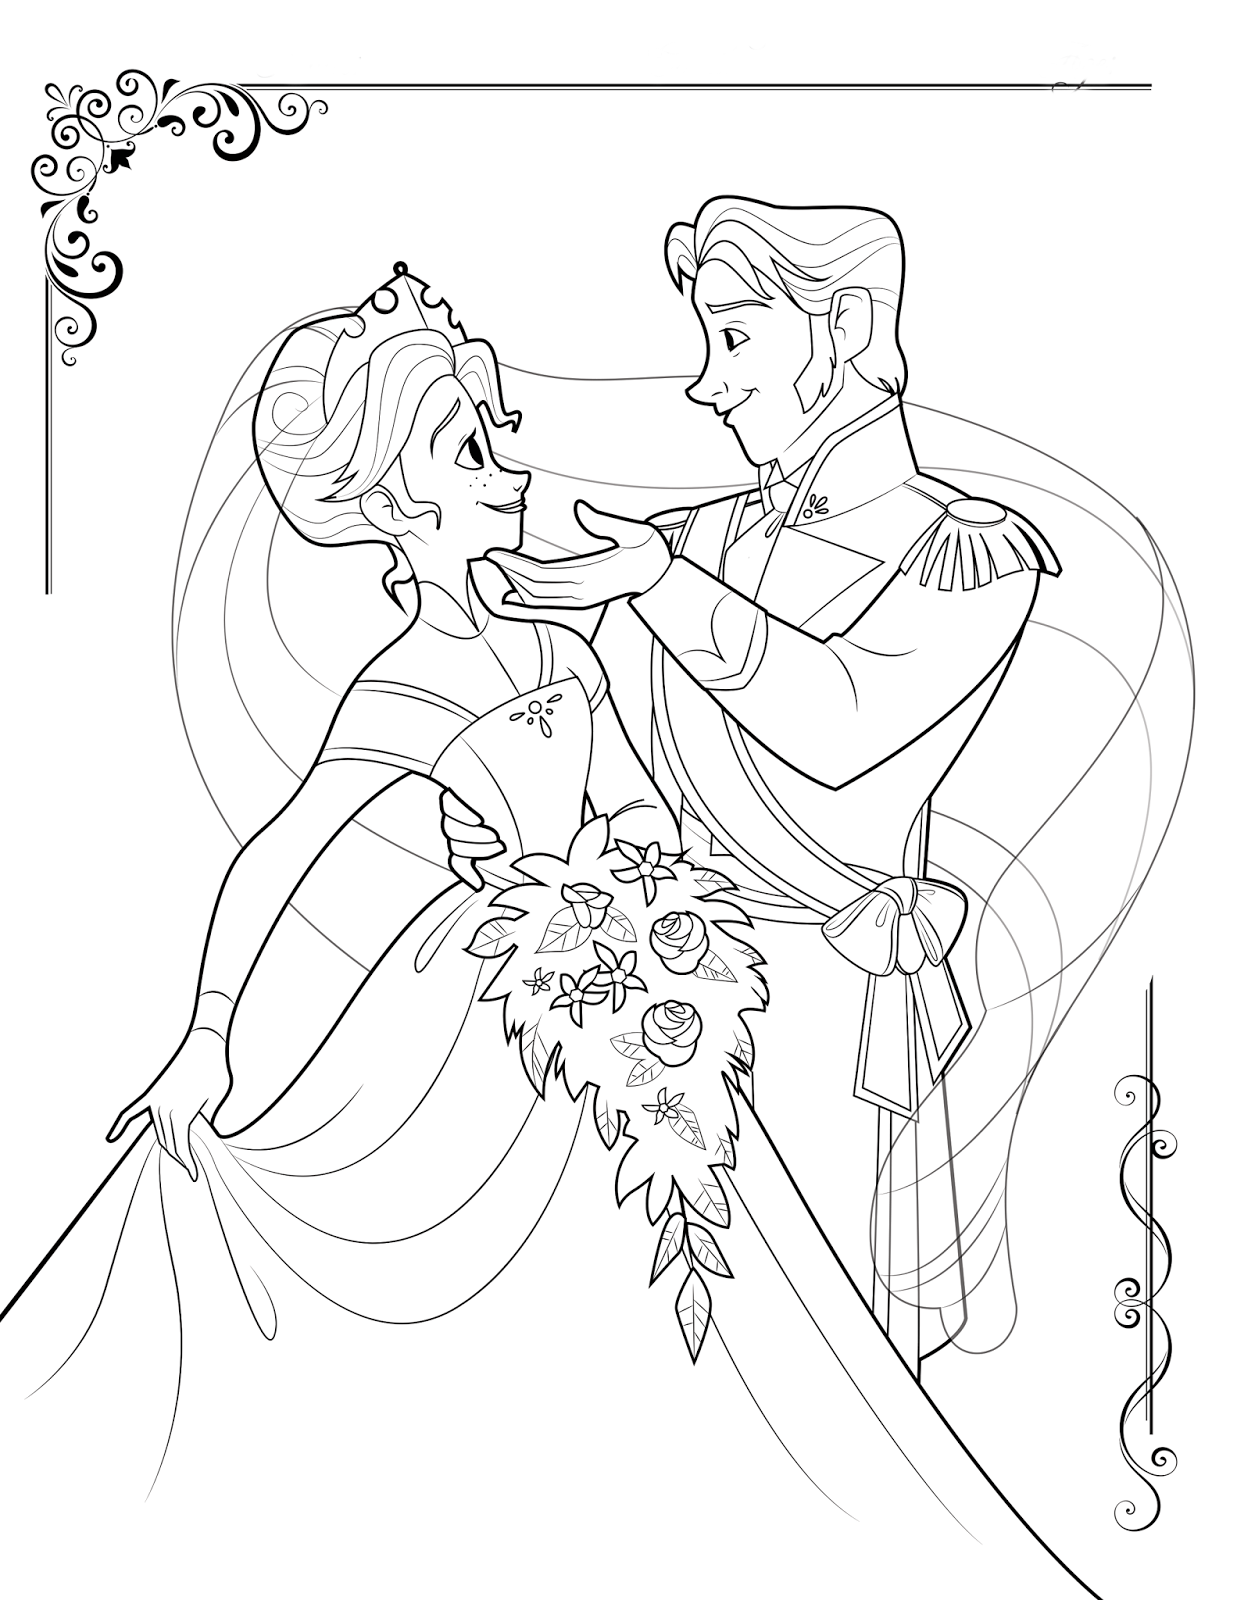 pictures of frozen to color frozen 2 coloring pages coloring home frozen to pictures color of